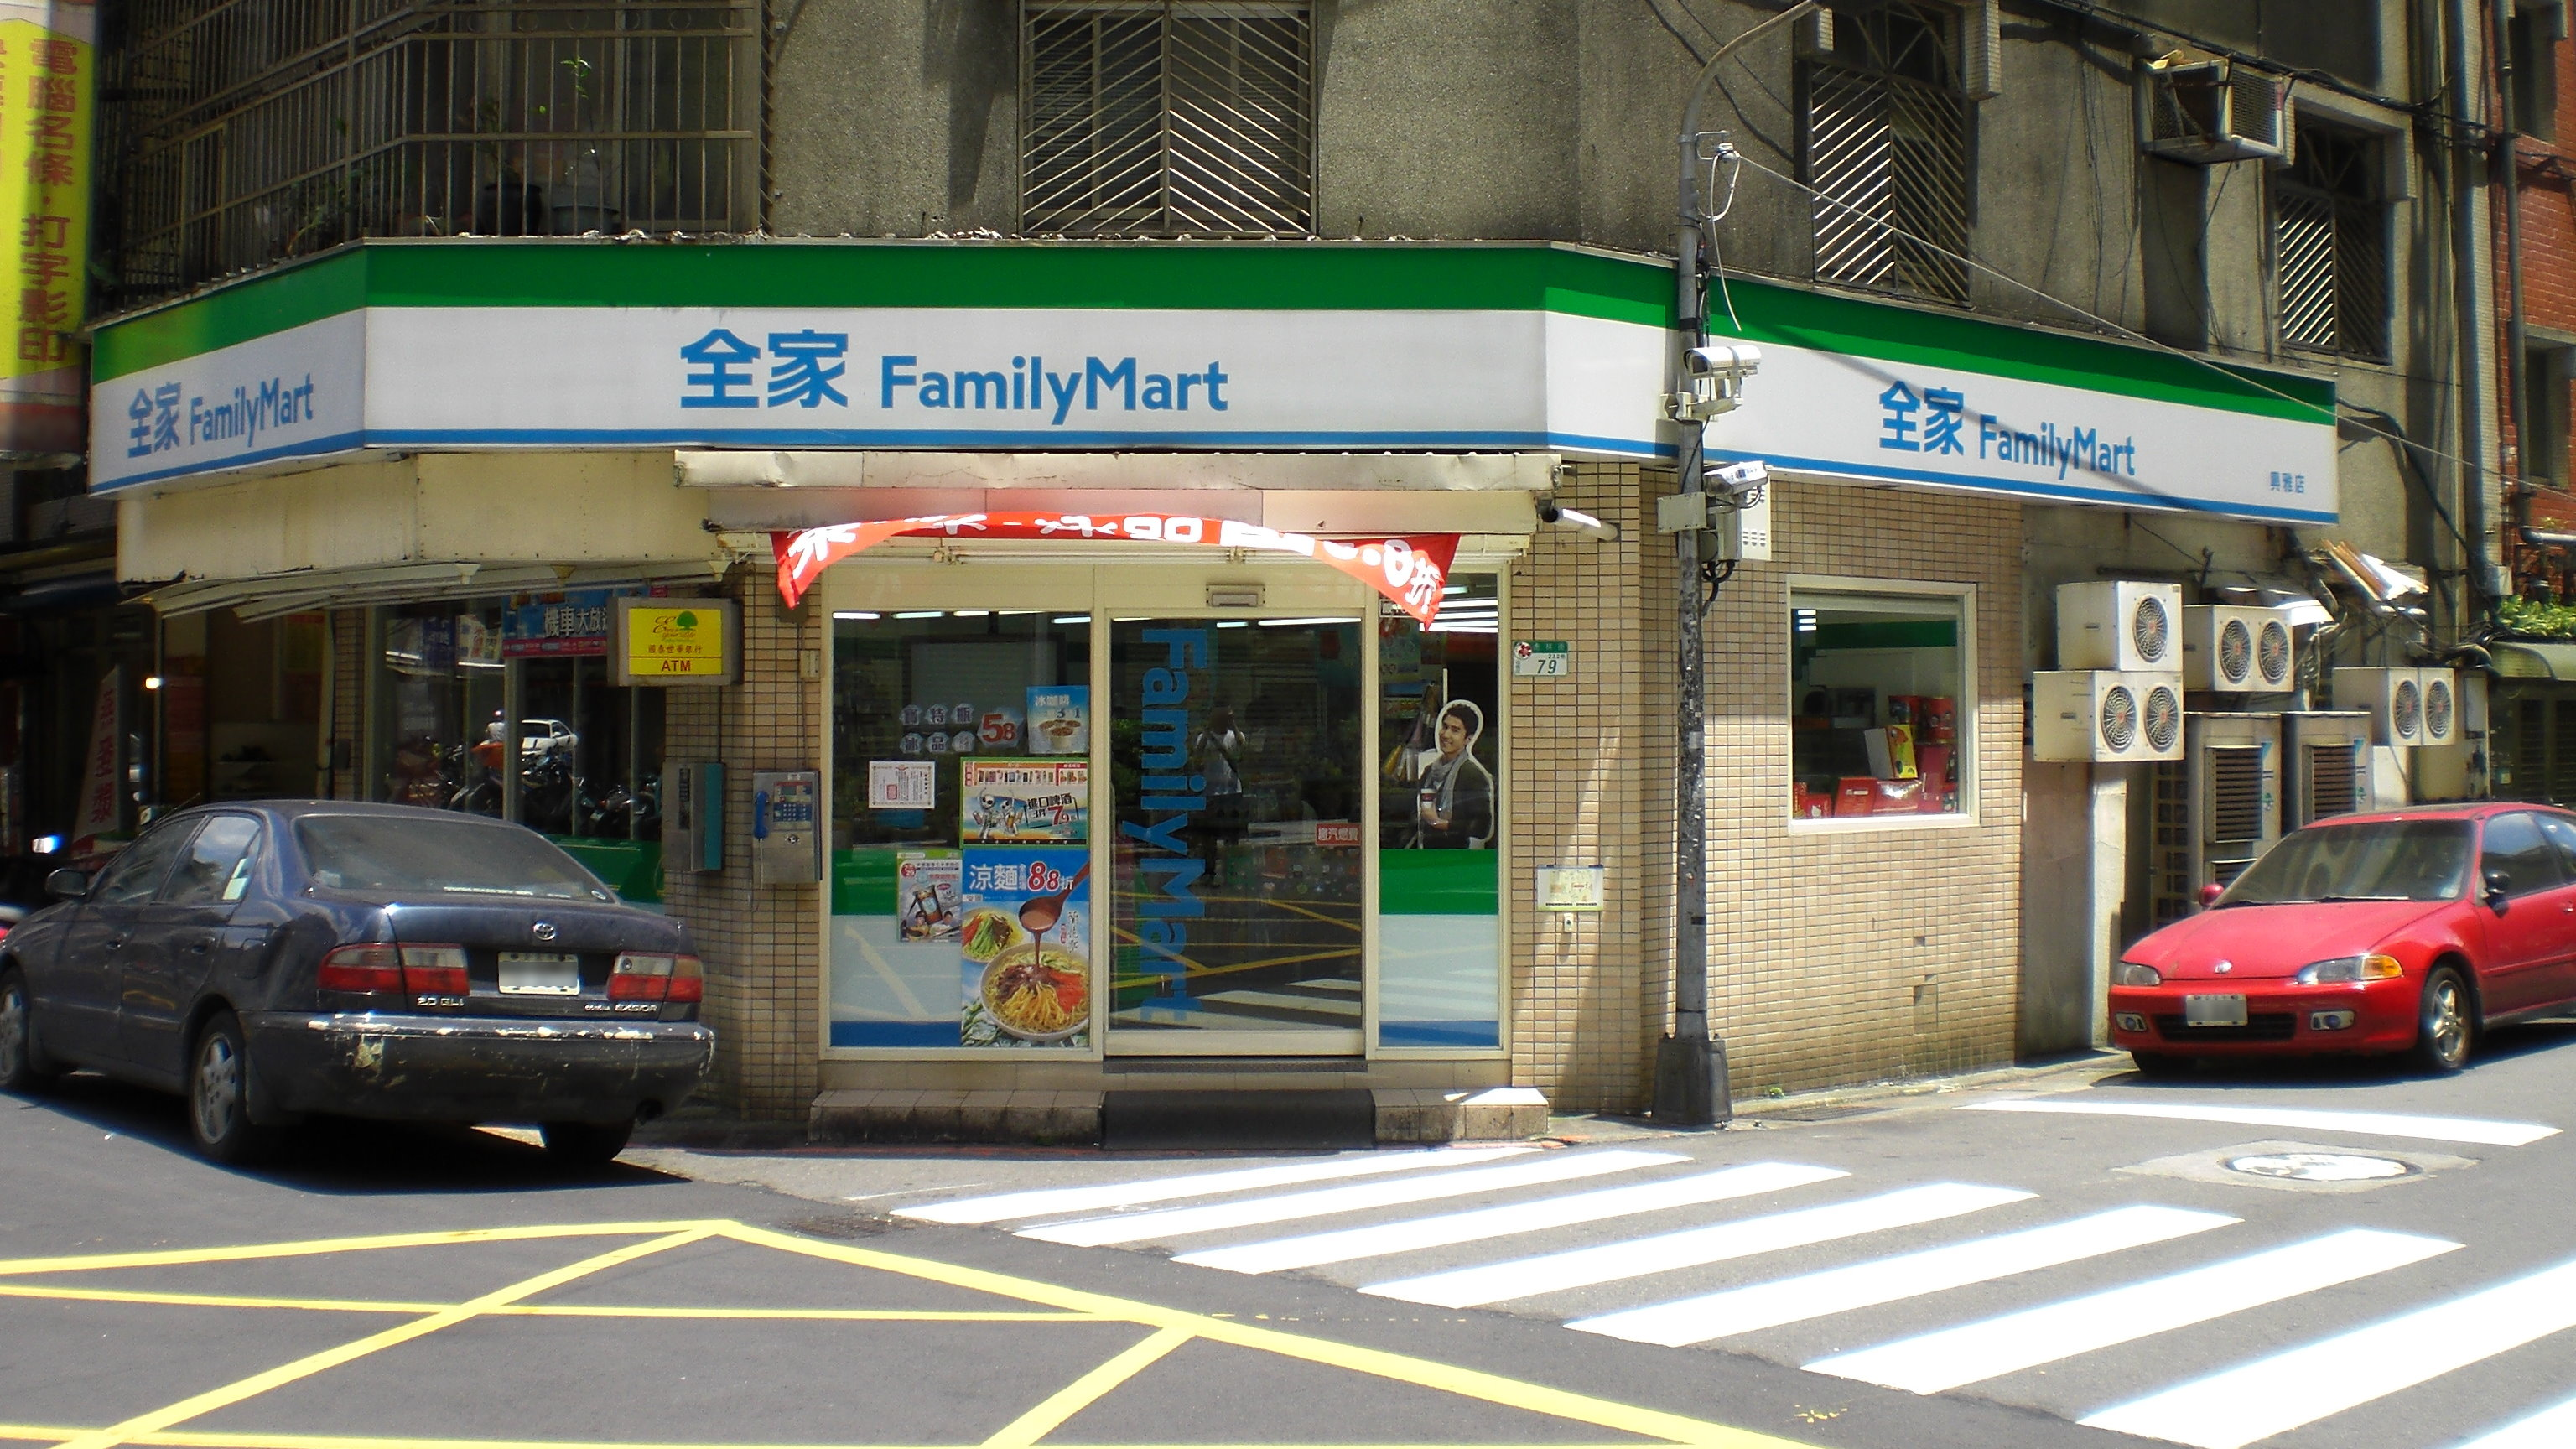 Bitcoin Now For Sale at Taiwan's Family Mart - VR World